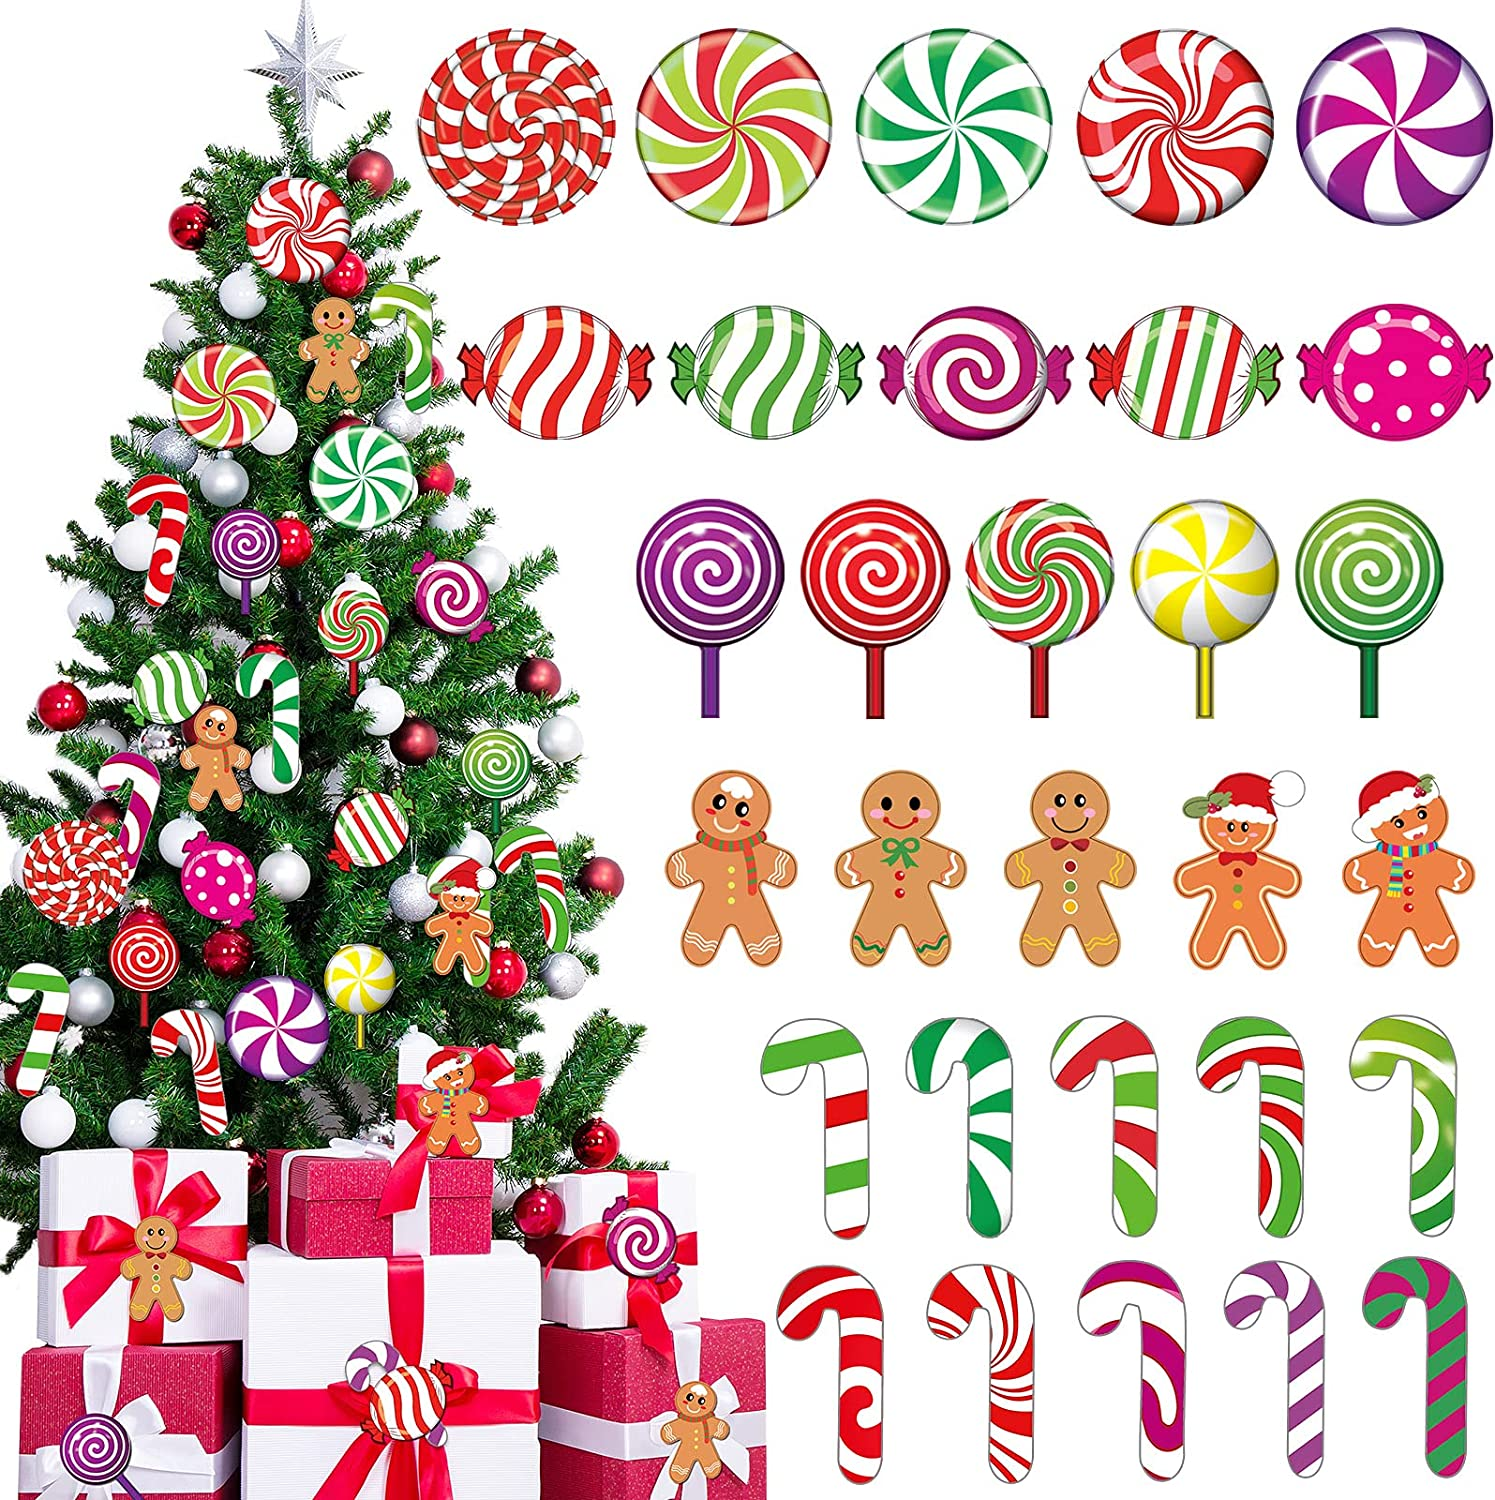 60 Pieces Peppermint Cutouts Christmas Candyland Wall Decor Floor Decal Stickers Colorful Gingerbread Candies Round Lollipop Candy Cane Cutout for Xmas Candy Party Decor Classroom Bulletin Board Decor